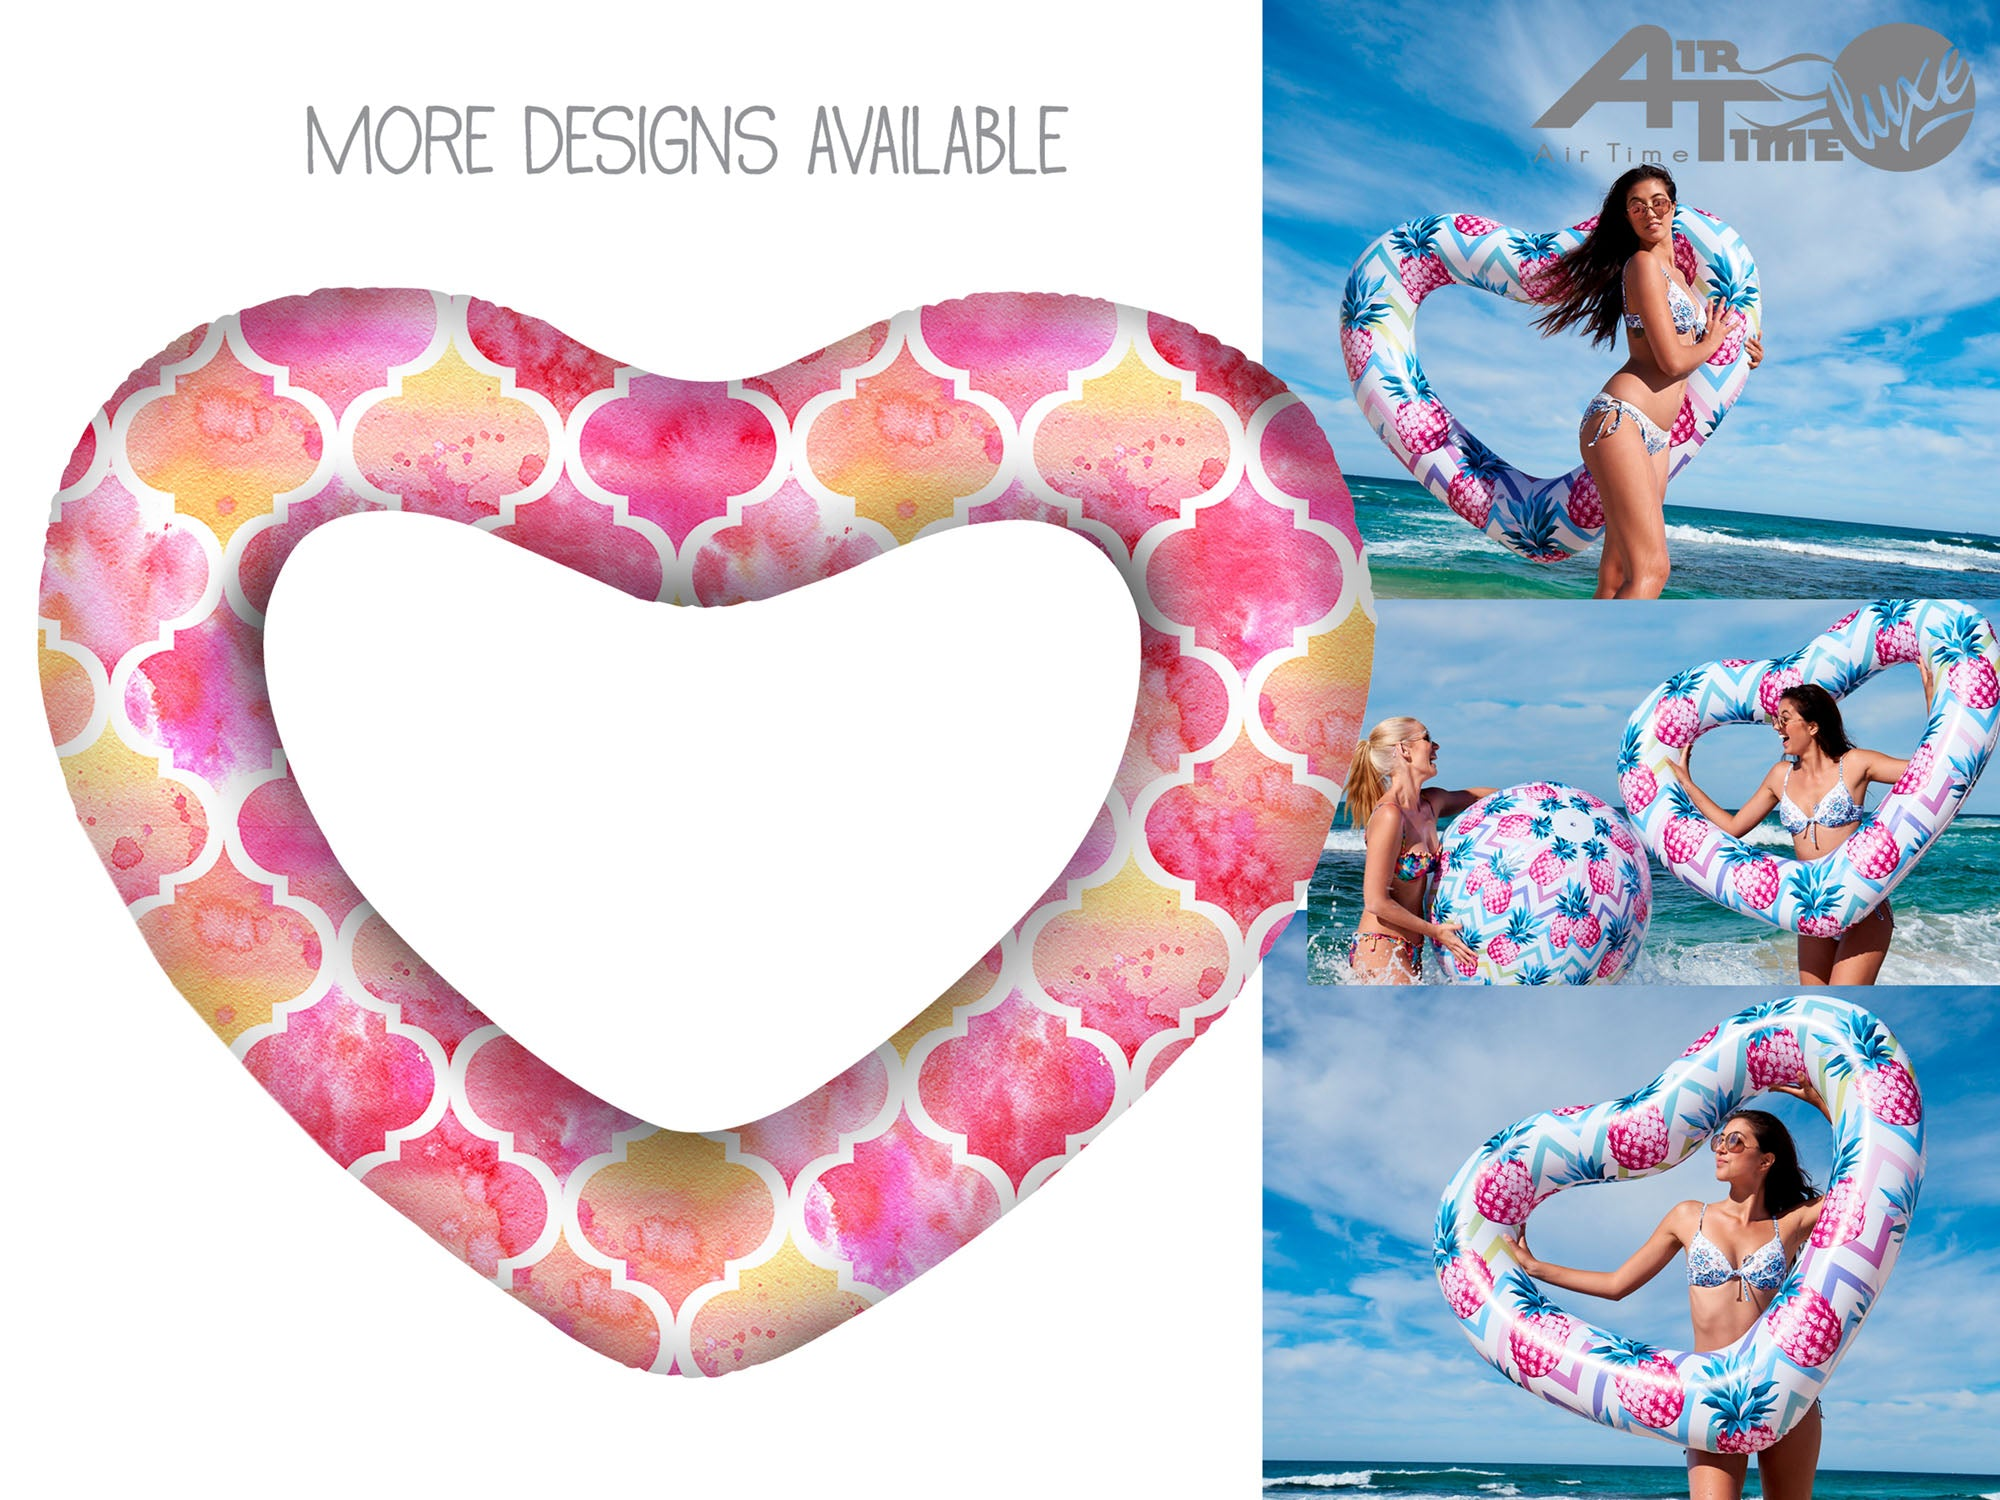 Giant Love Heart Swim Ring. Assorted Designs. - Chachi's Bay - kids rashies - kids swimwear - kids swim shoes - round towels - beach towels